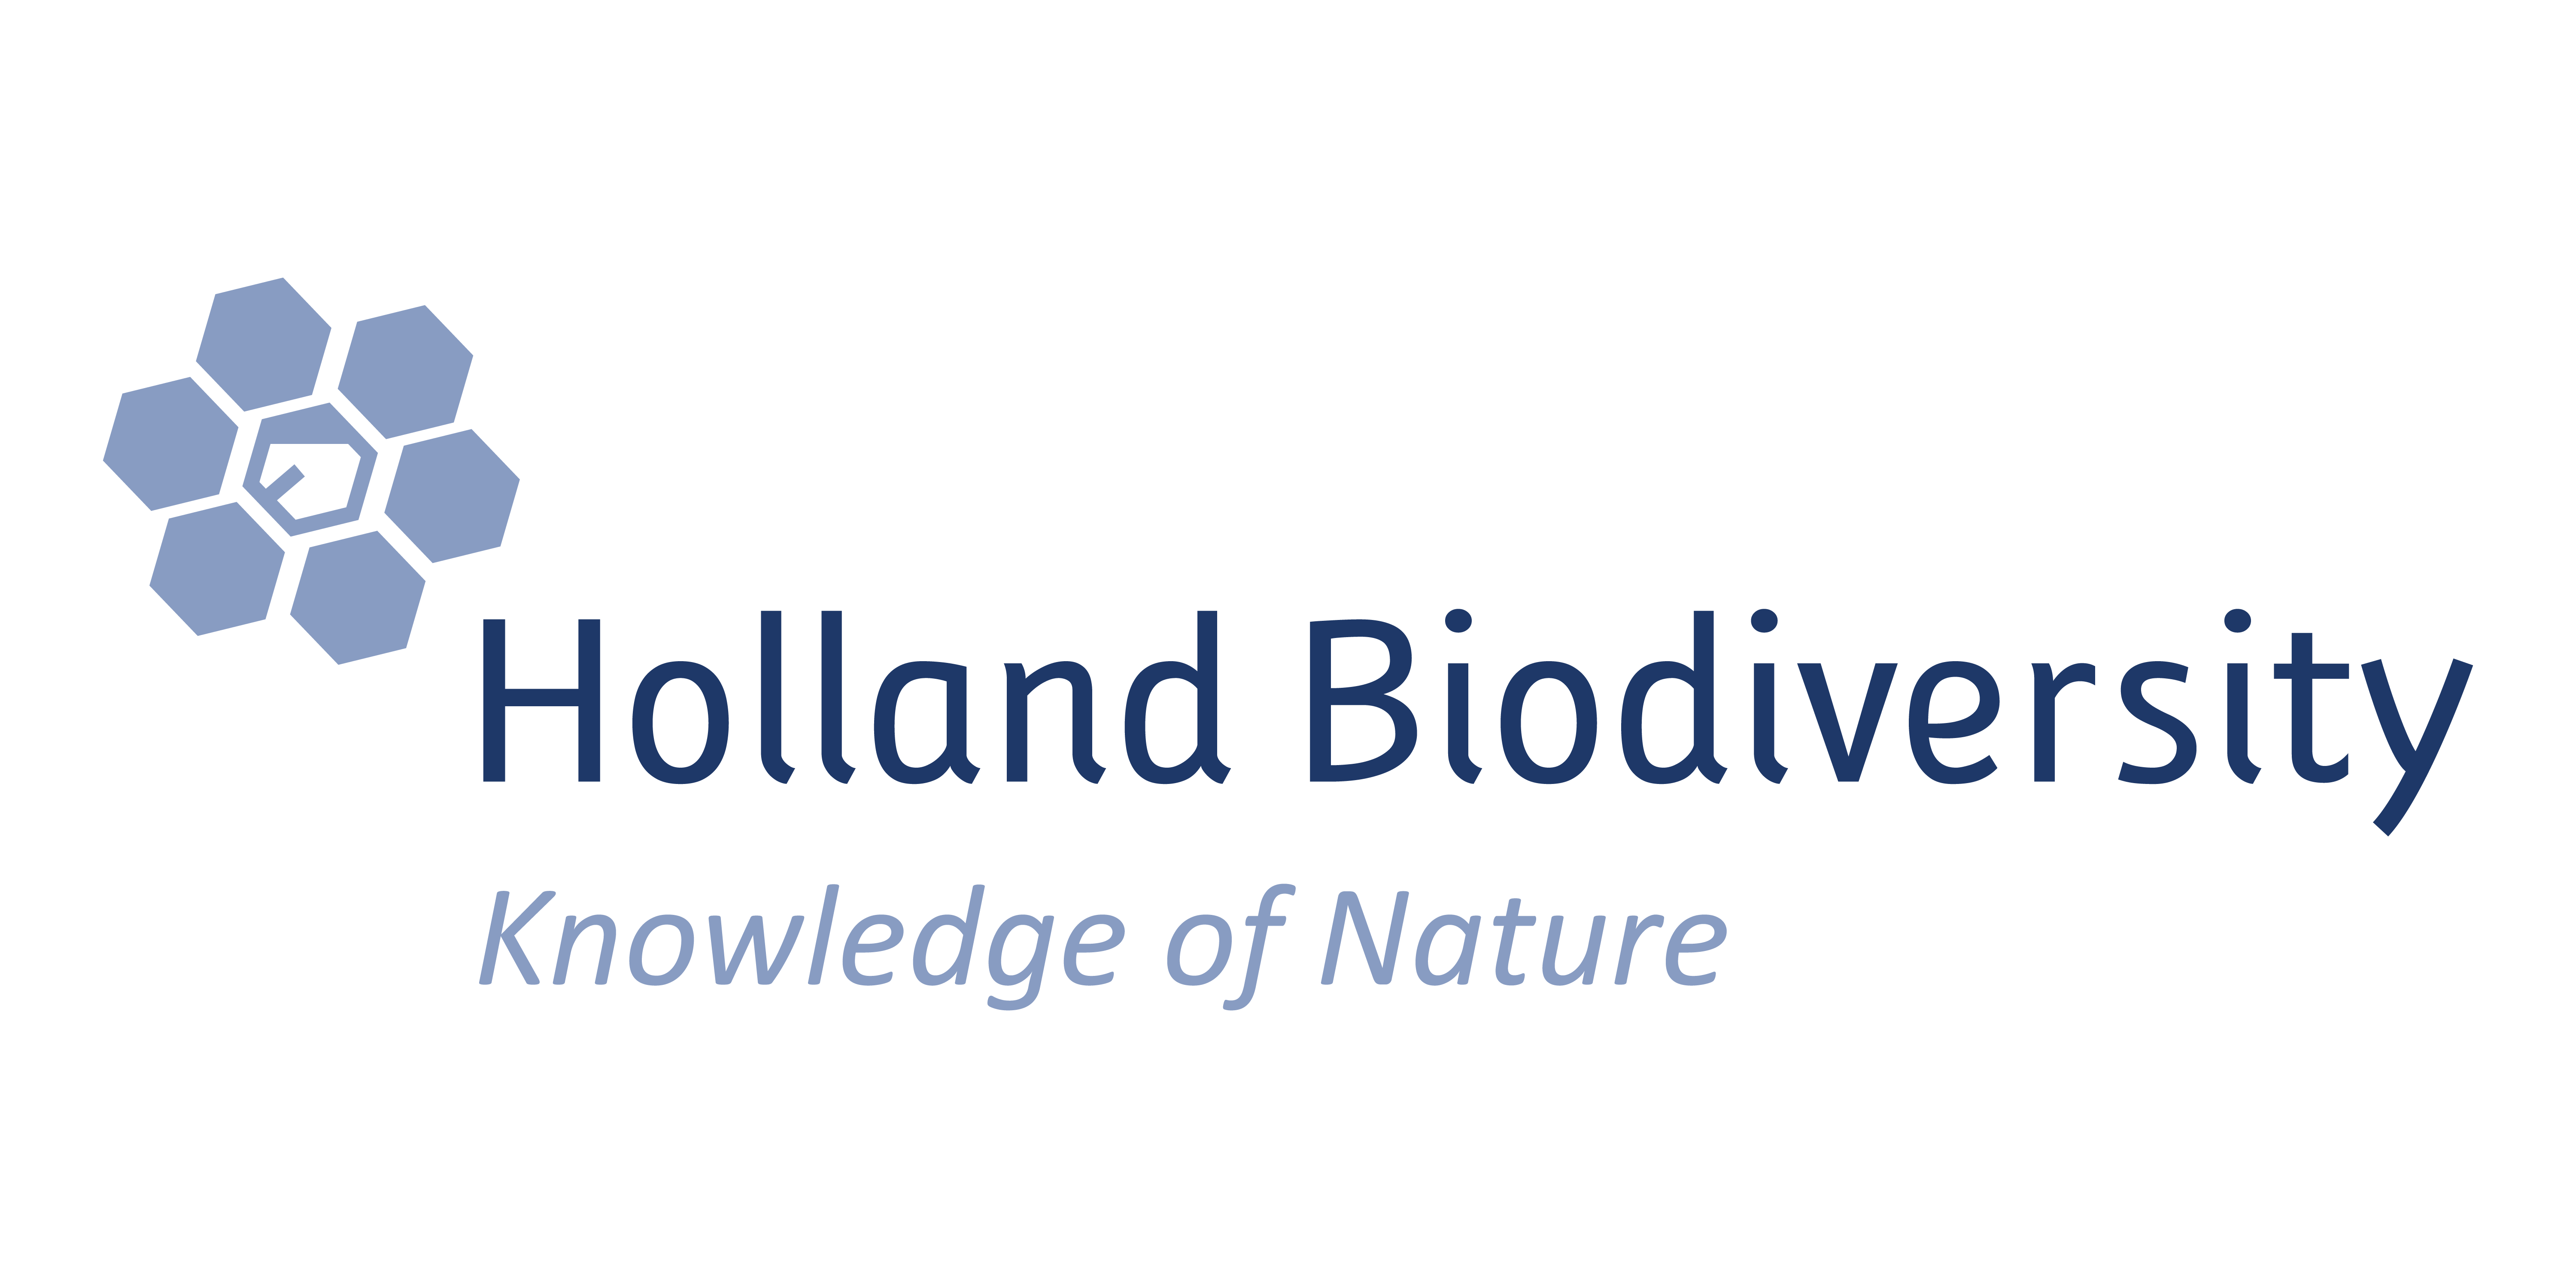 Holland Biodiversity